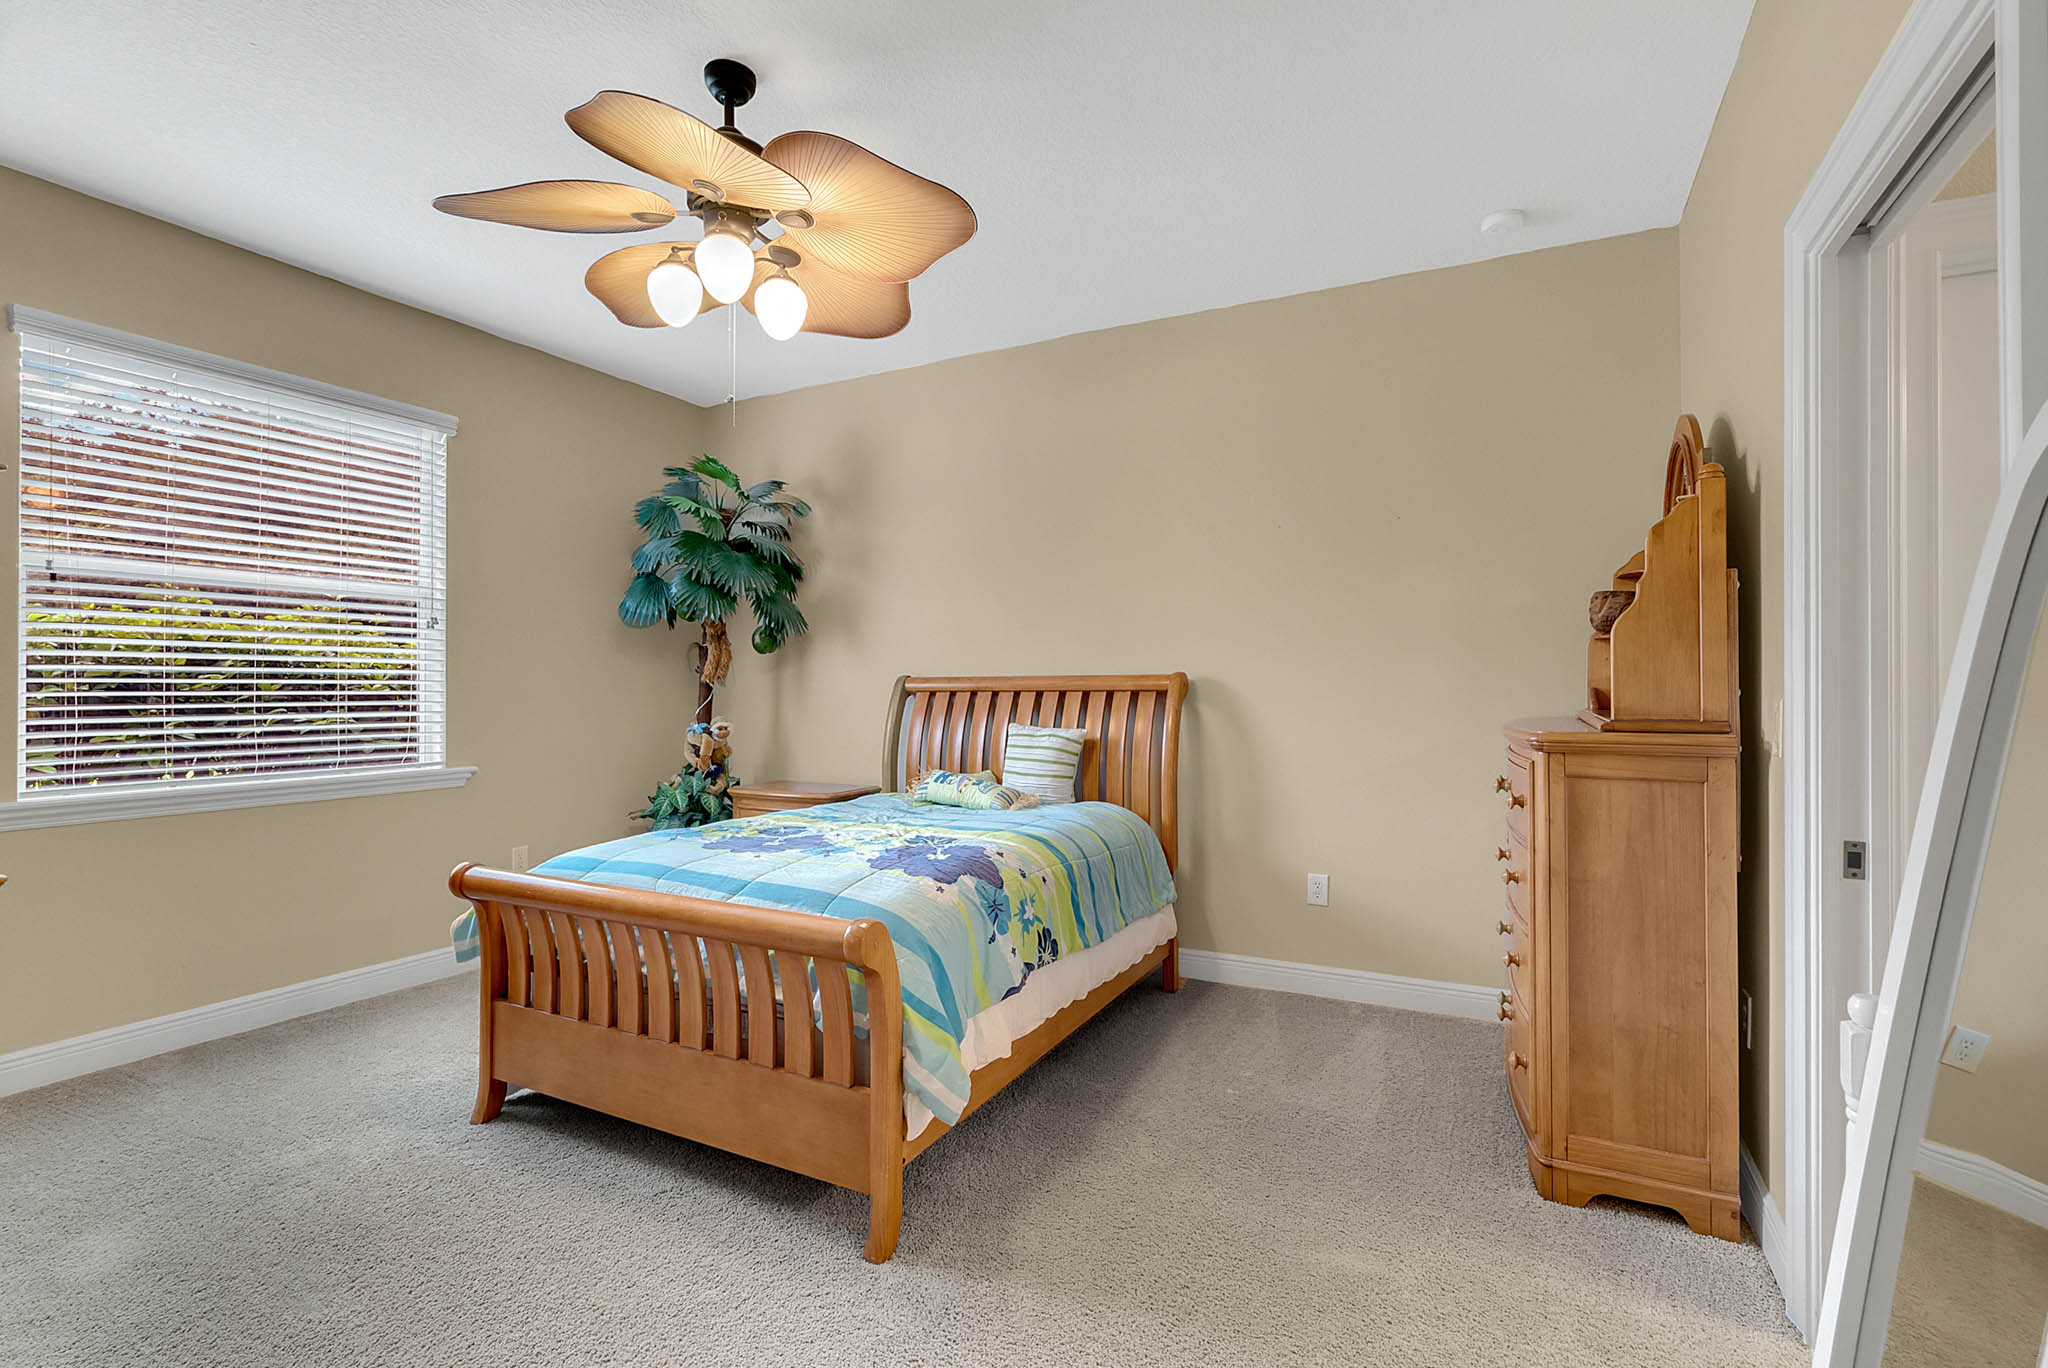 7919-Florida-Boys-Ranch-Rd--Groveland--FL-34736----26---Bedroom.jpg